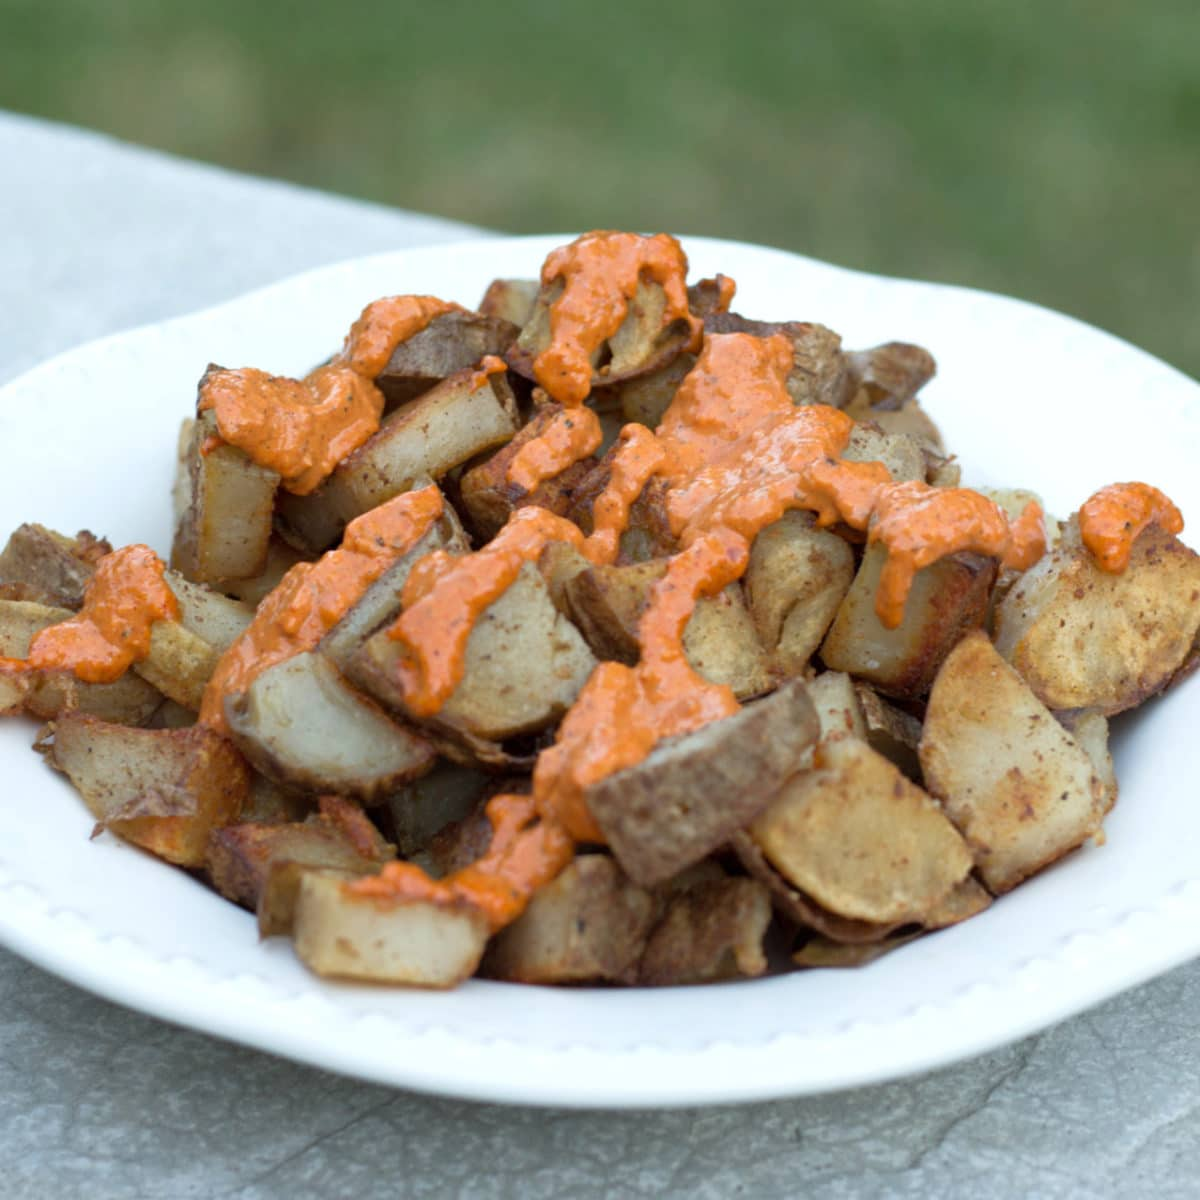 Want an authentic taste of Spain? Make these amazing patatas bravas. Potatoes with a beautiful spicy paprika sauce.